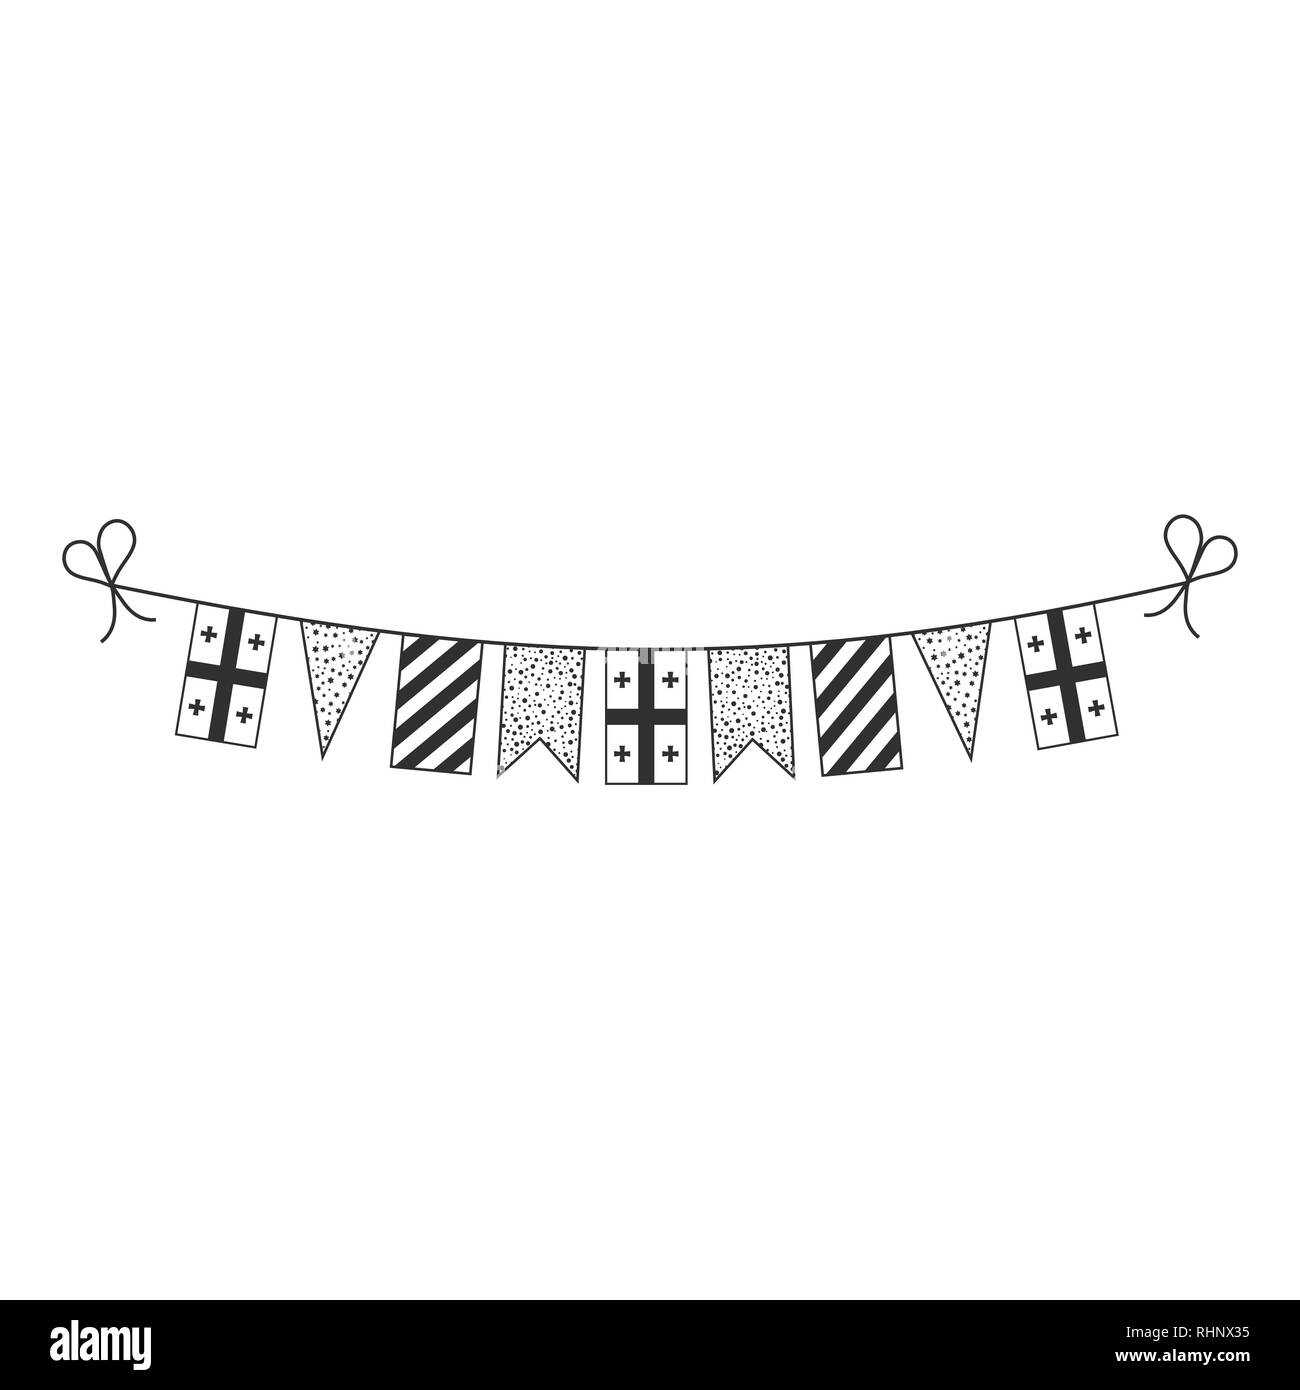 Decorations bunting flags for Georgia national day holiday in black outline flat design. Independence day or National day holiday concept. - Stock Image